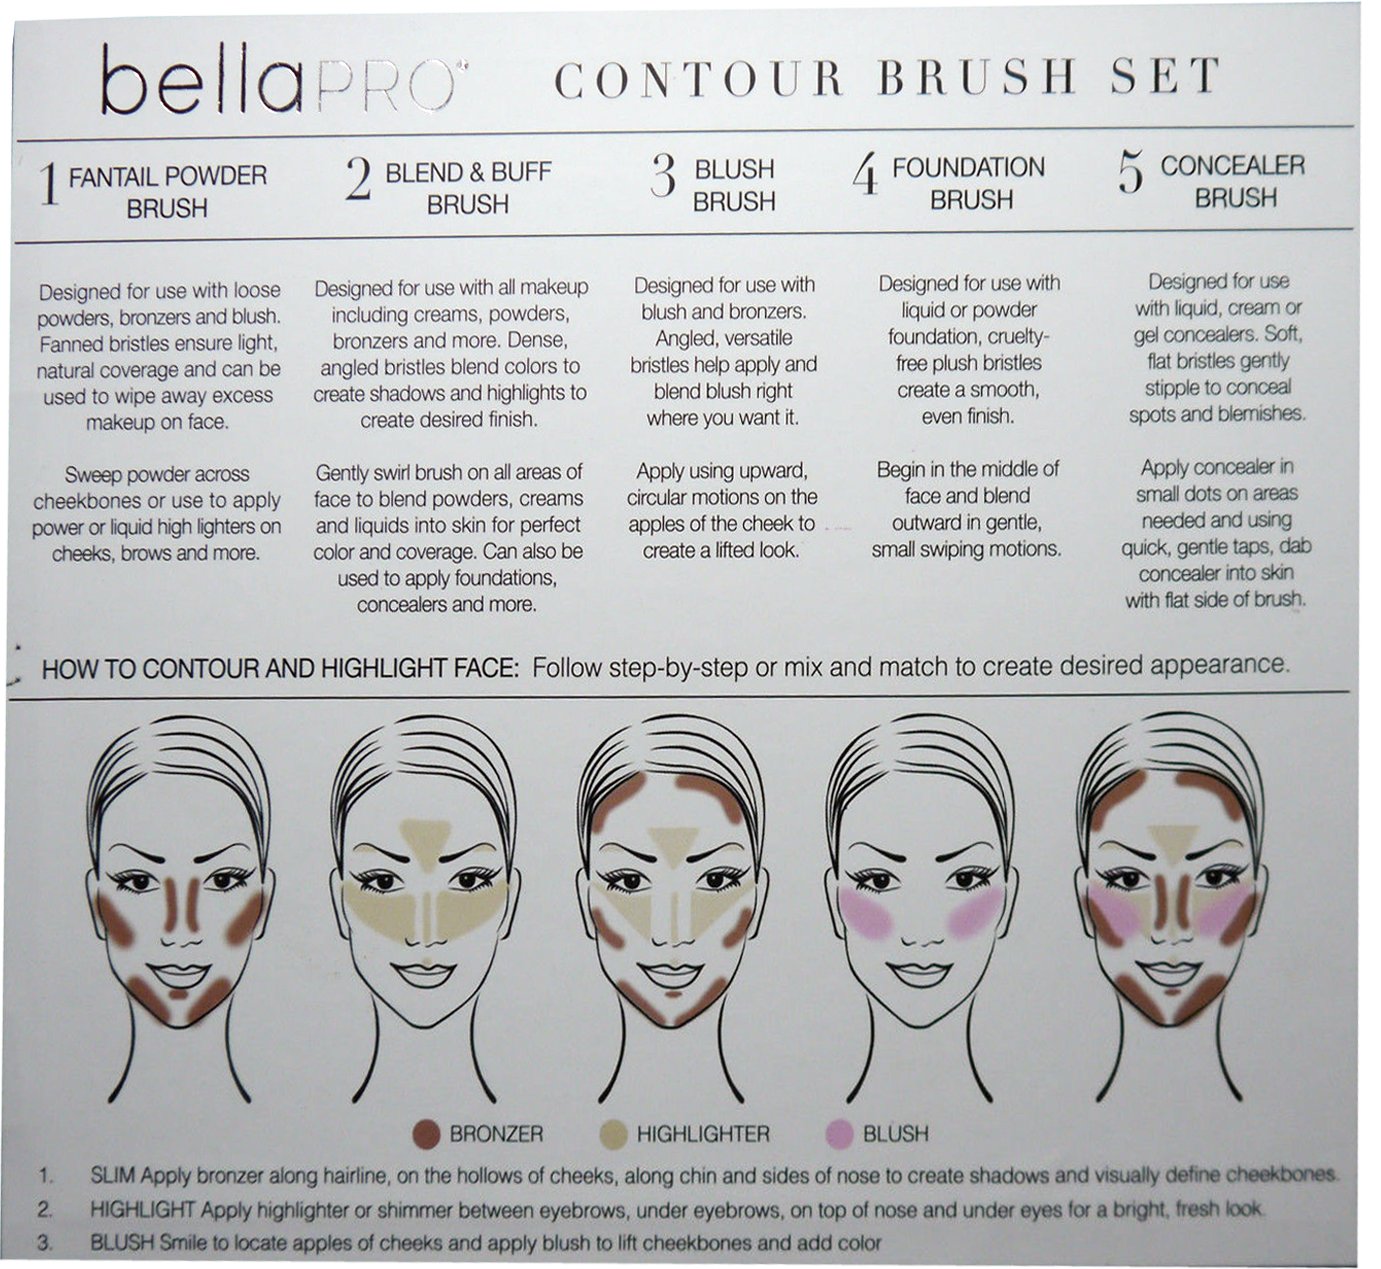 Bella Pro Signature Five Silver Contour Brush Set